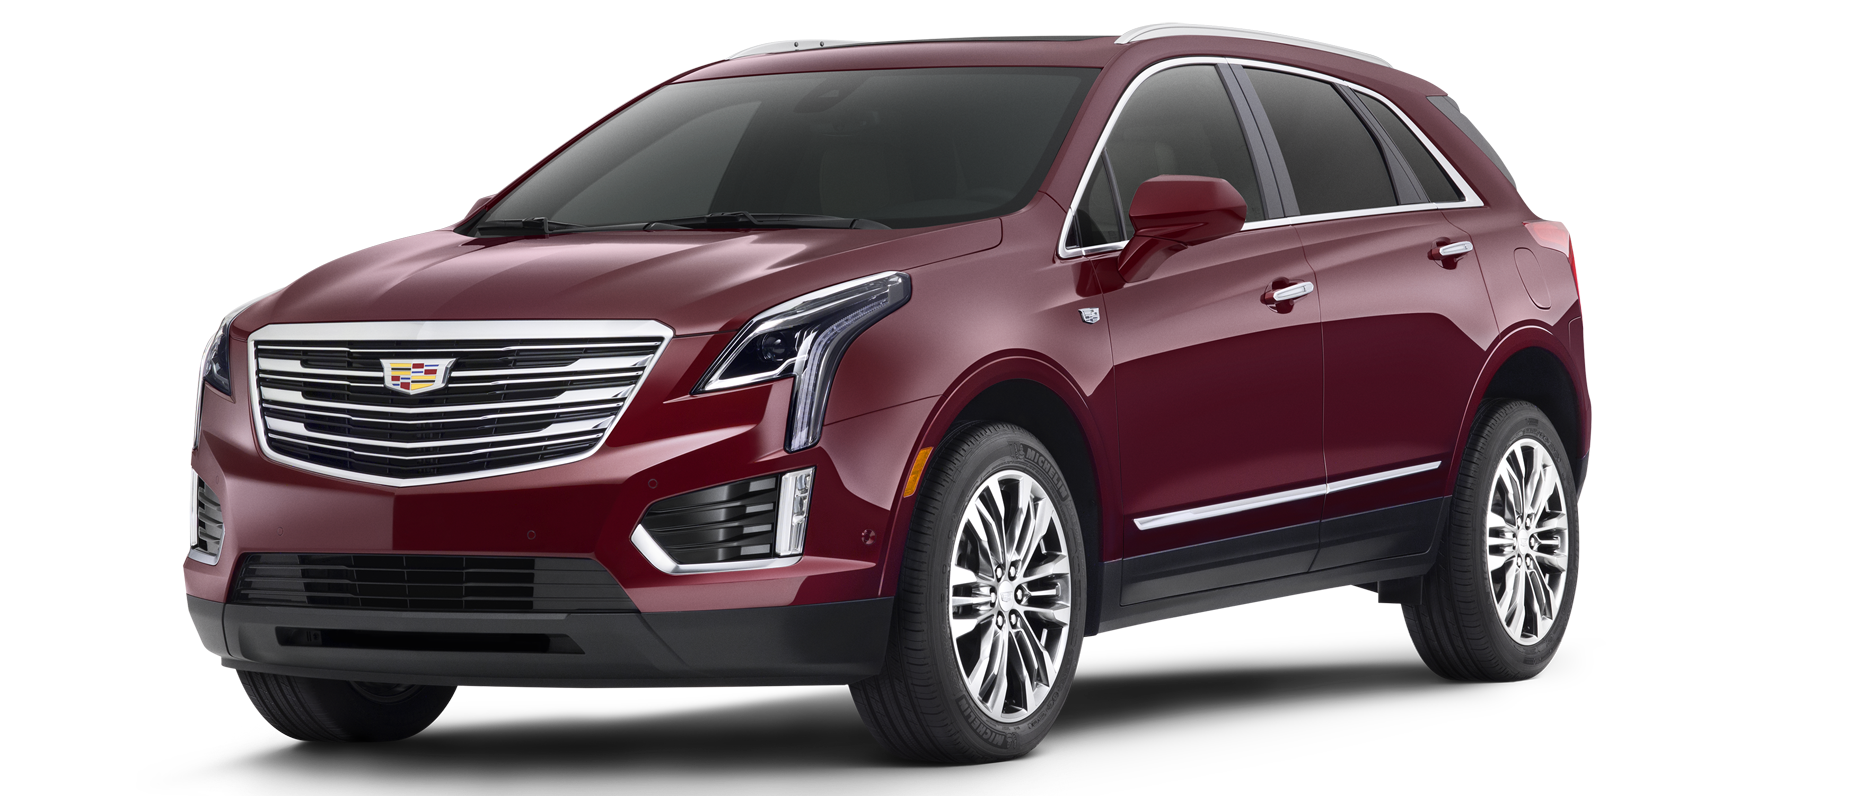 Cadillac Clipart PNG File 22852